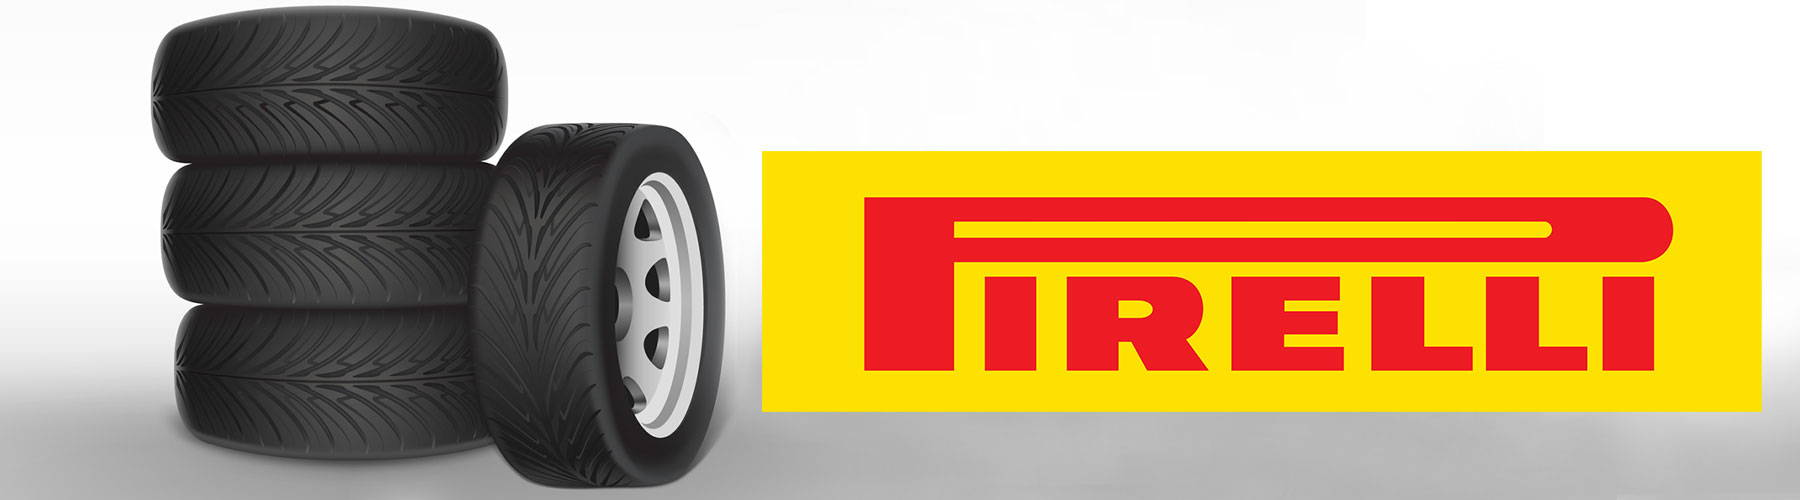 Pirelli red and yellow logo and Tyres